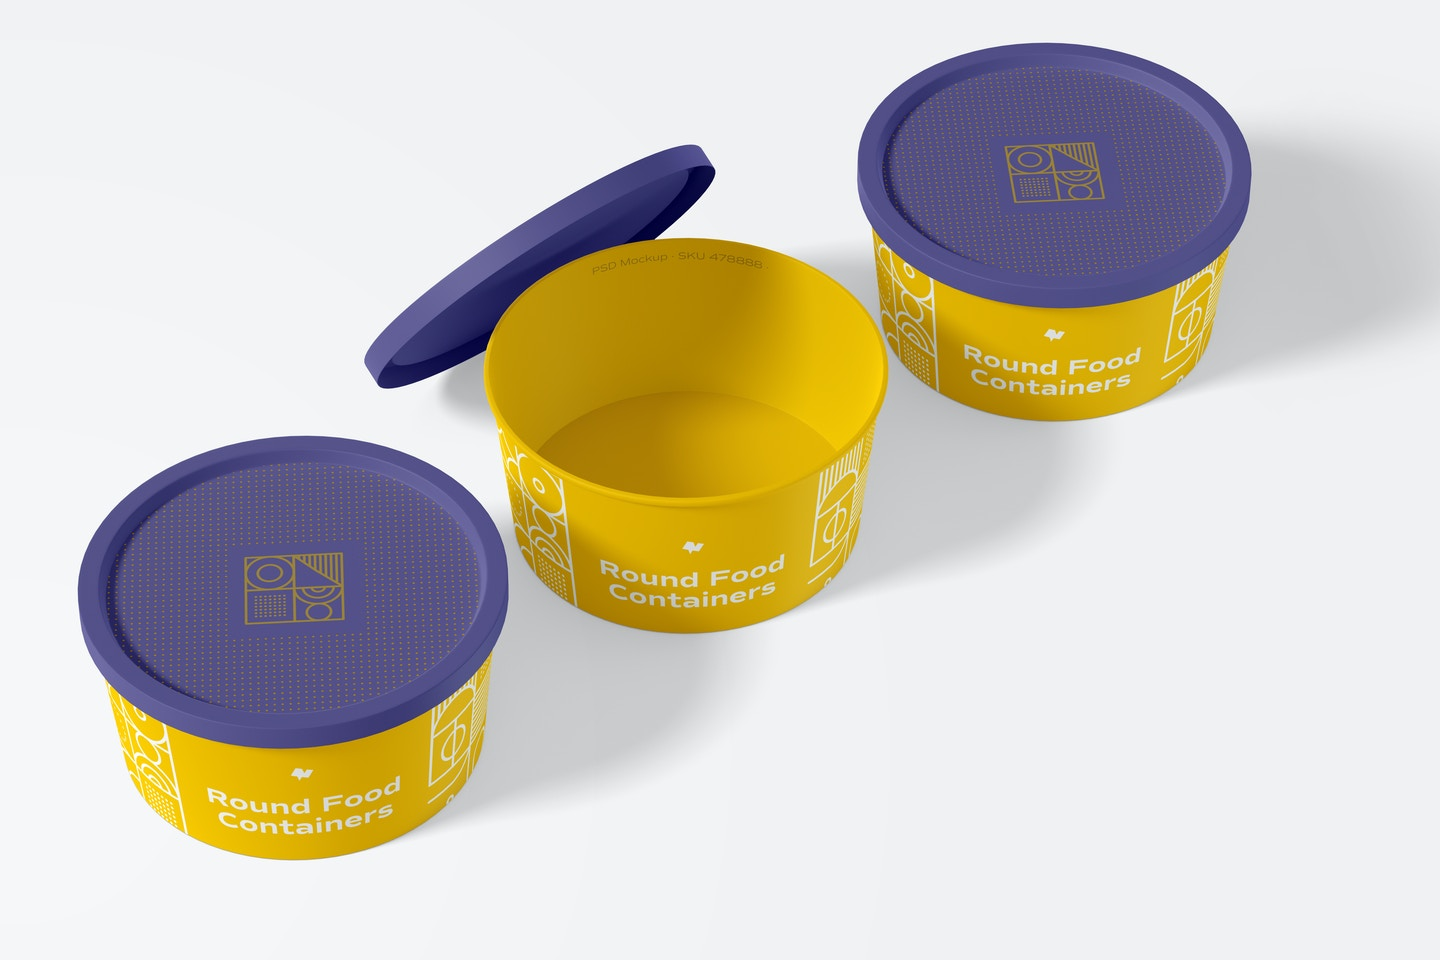 Round Plastic Food Delivery Containers Mockup